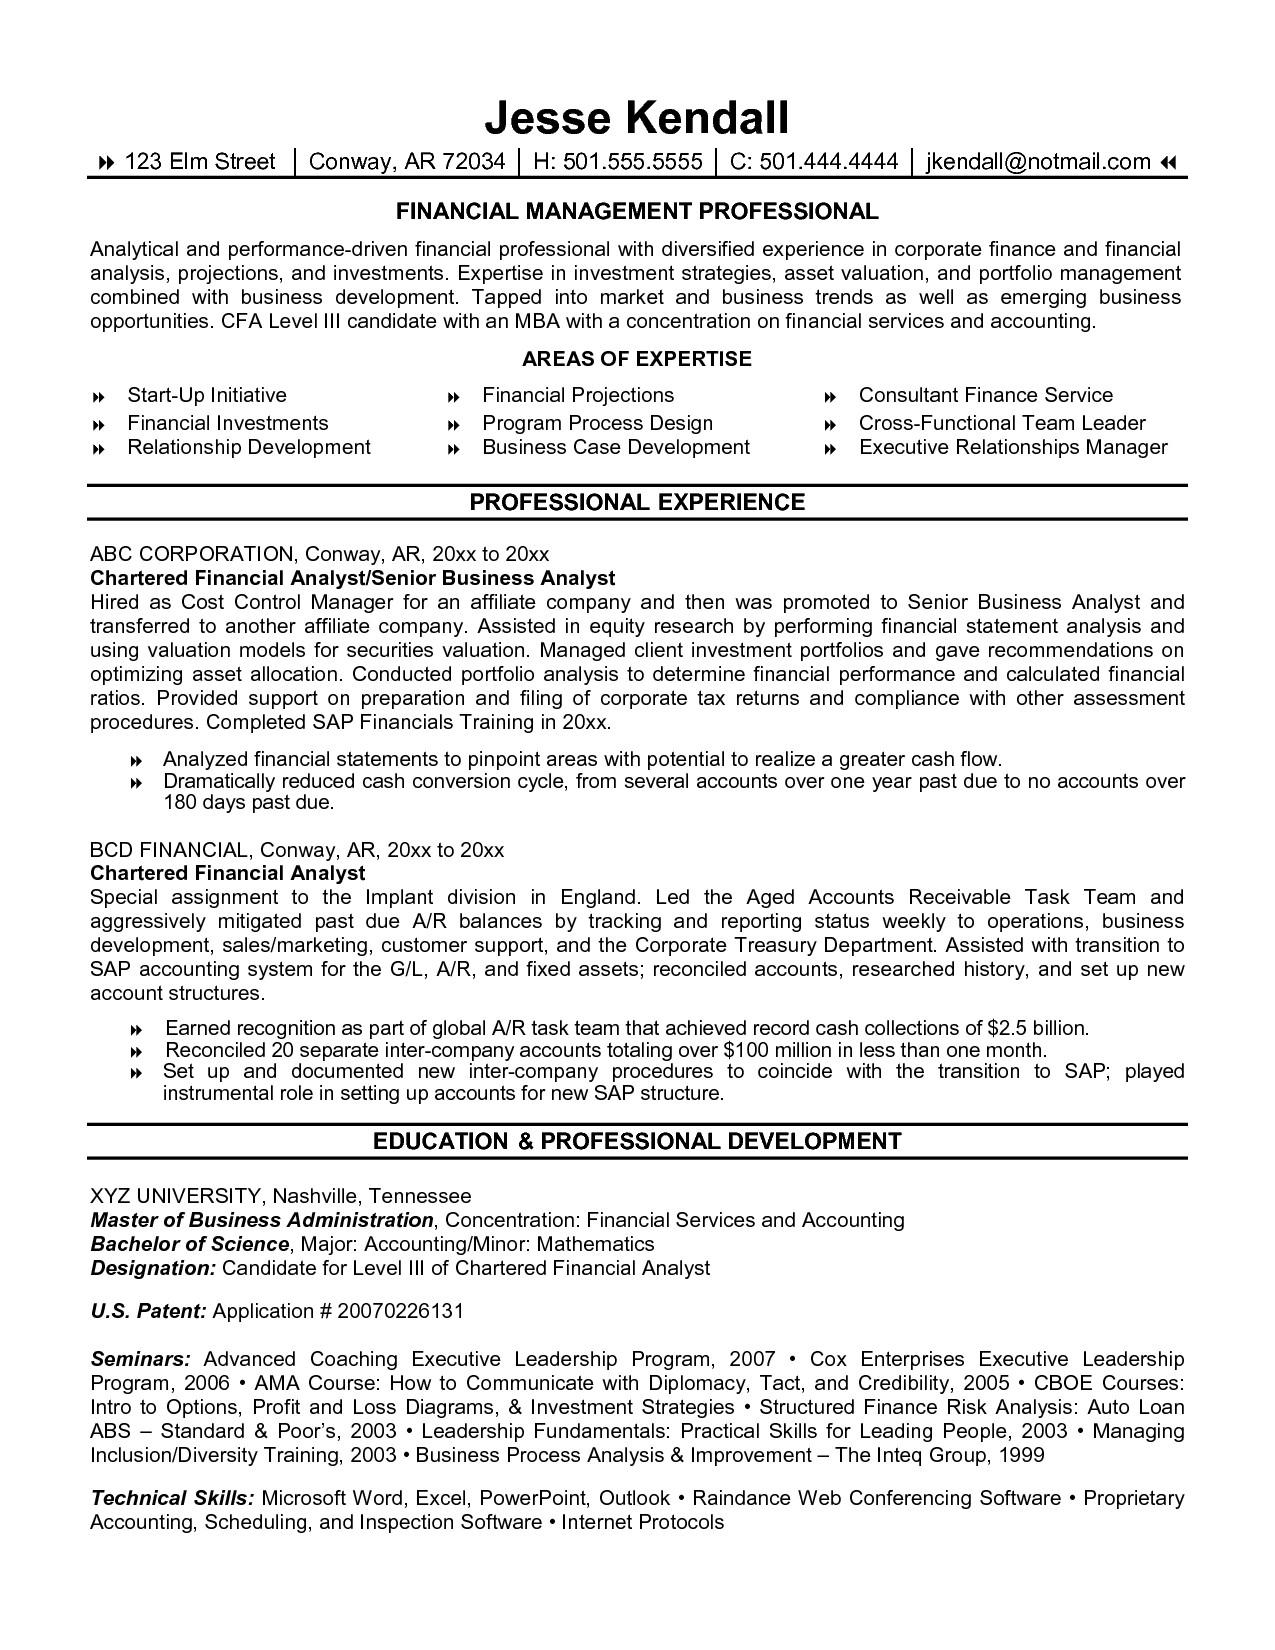 Resume Financial Analyst Best Format Amazing Finance Examples Livecareer  Cfa Candidate Resume